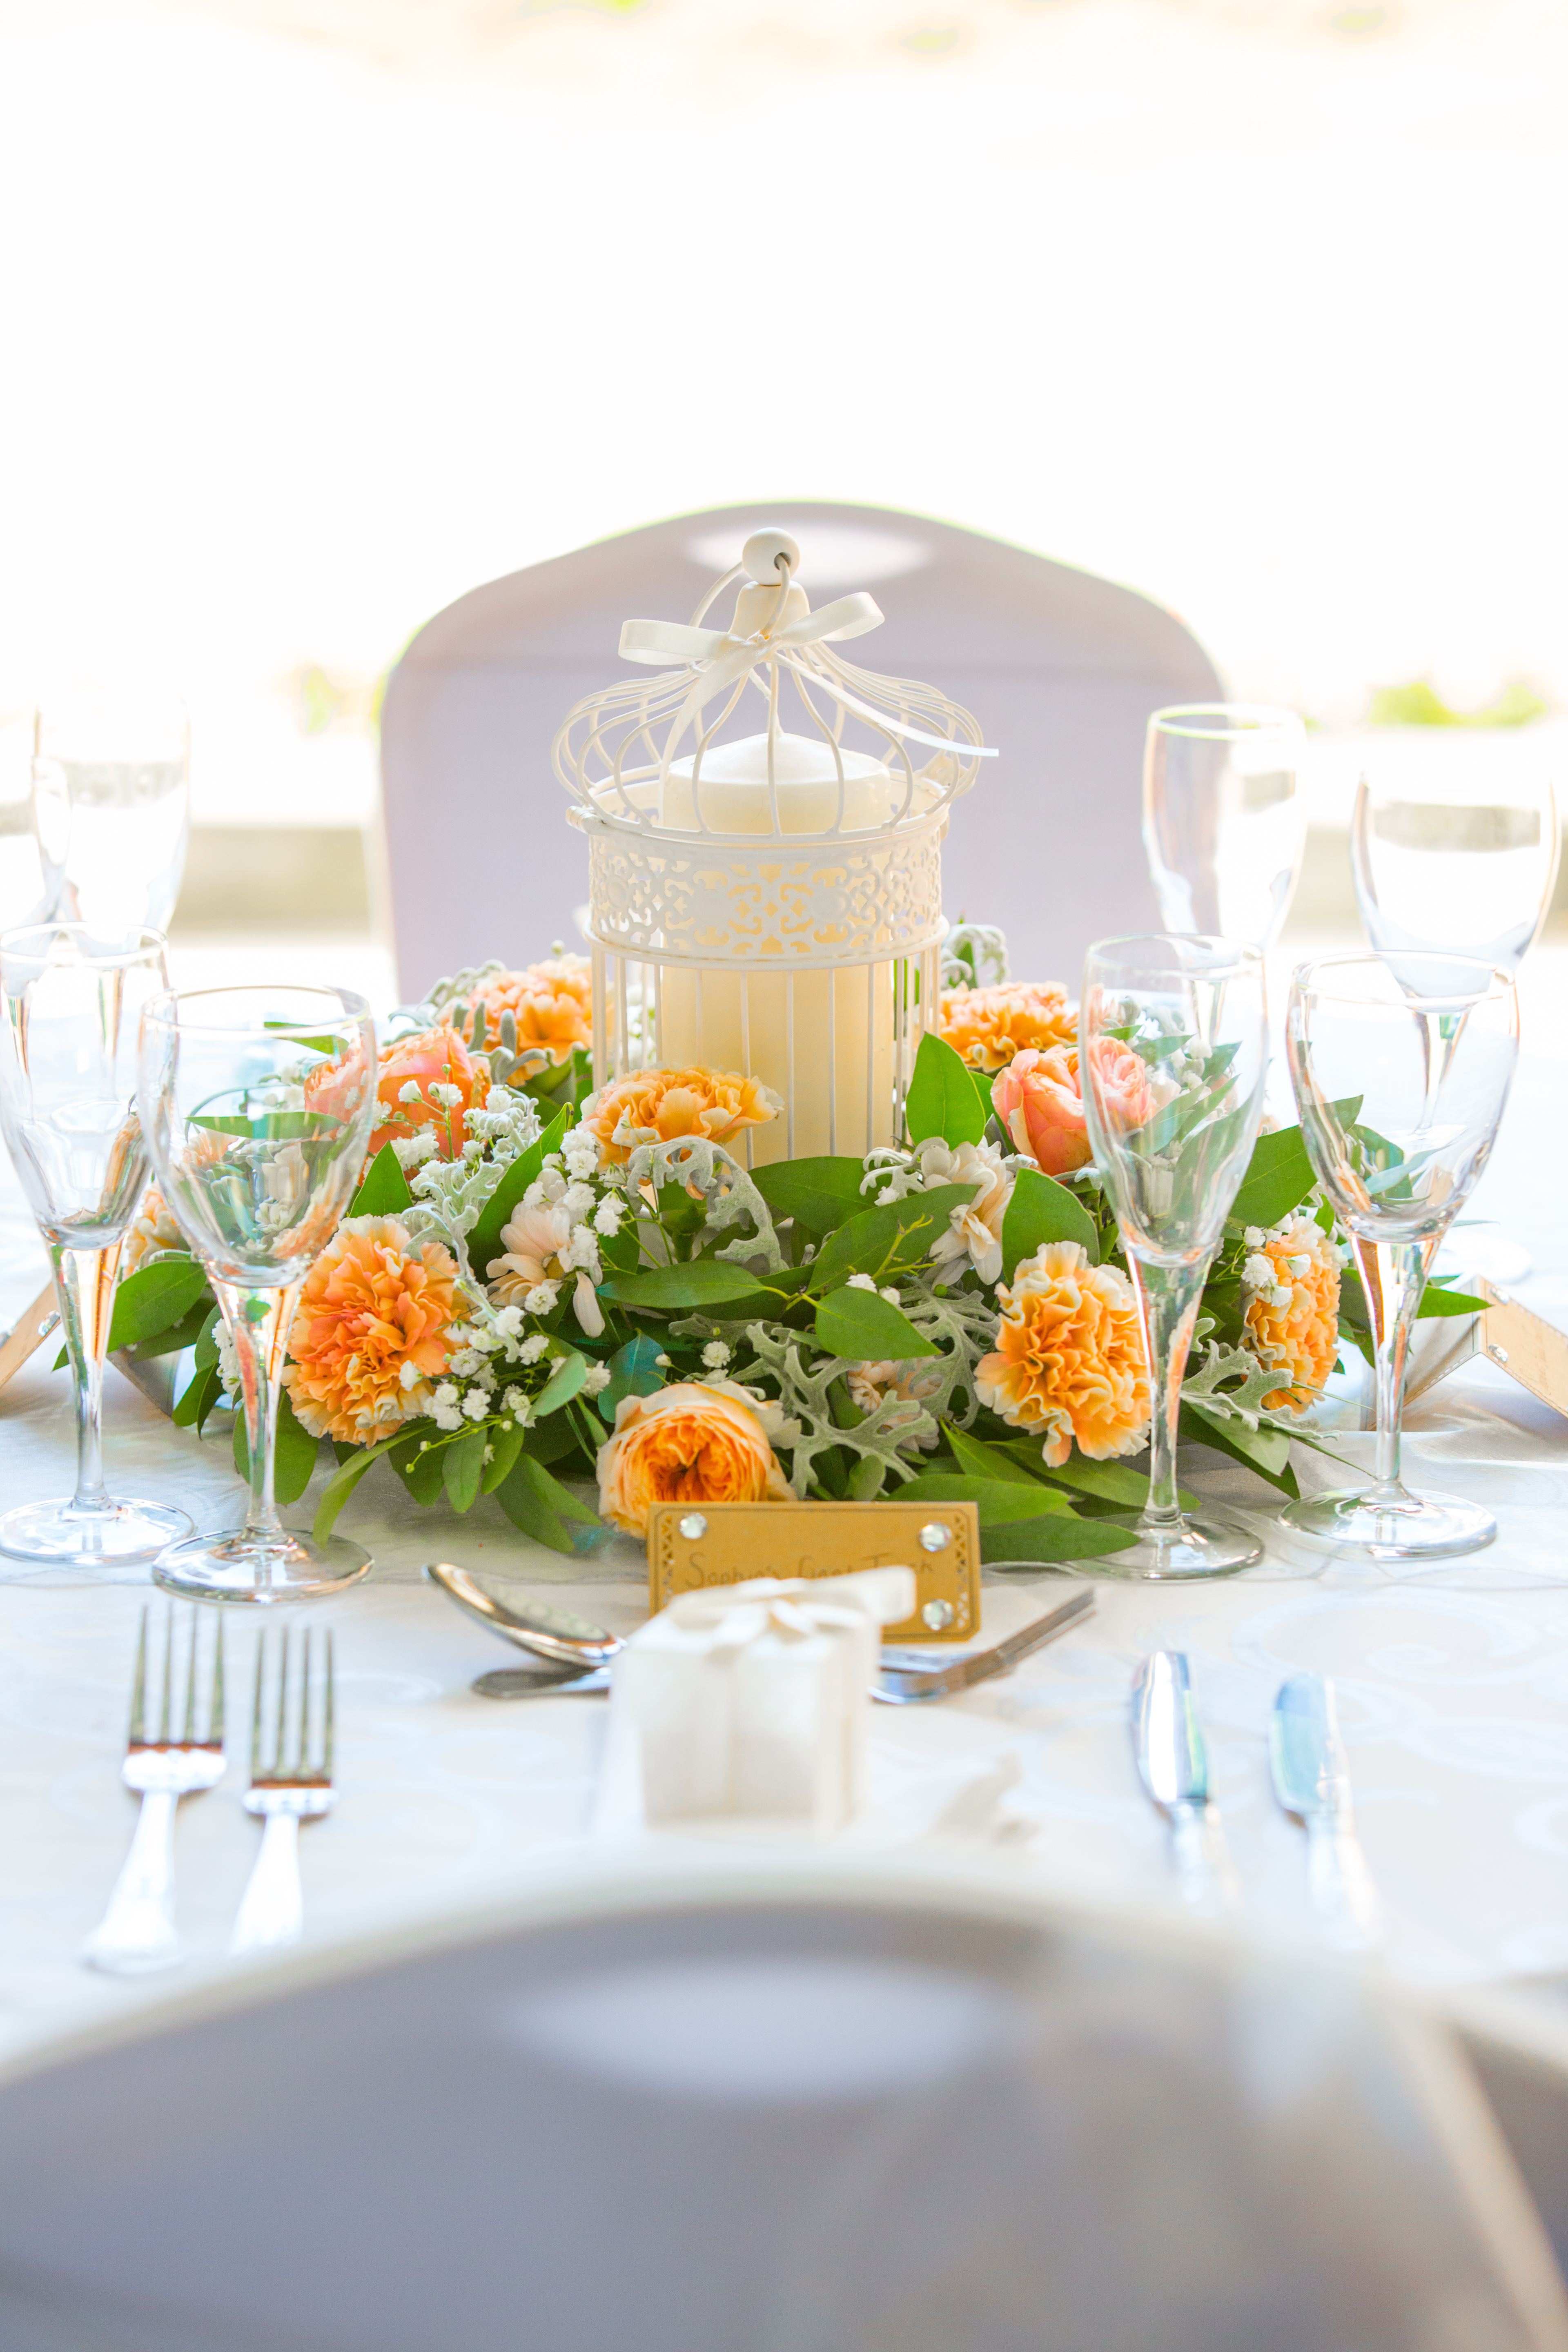 Cream Birdcage With Fresh Flower Reef & Candle – Wedding Venue Styling- Sophia's Final Touch- Wedding & Event Decoration